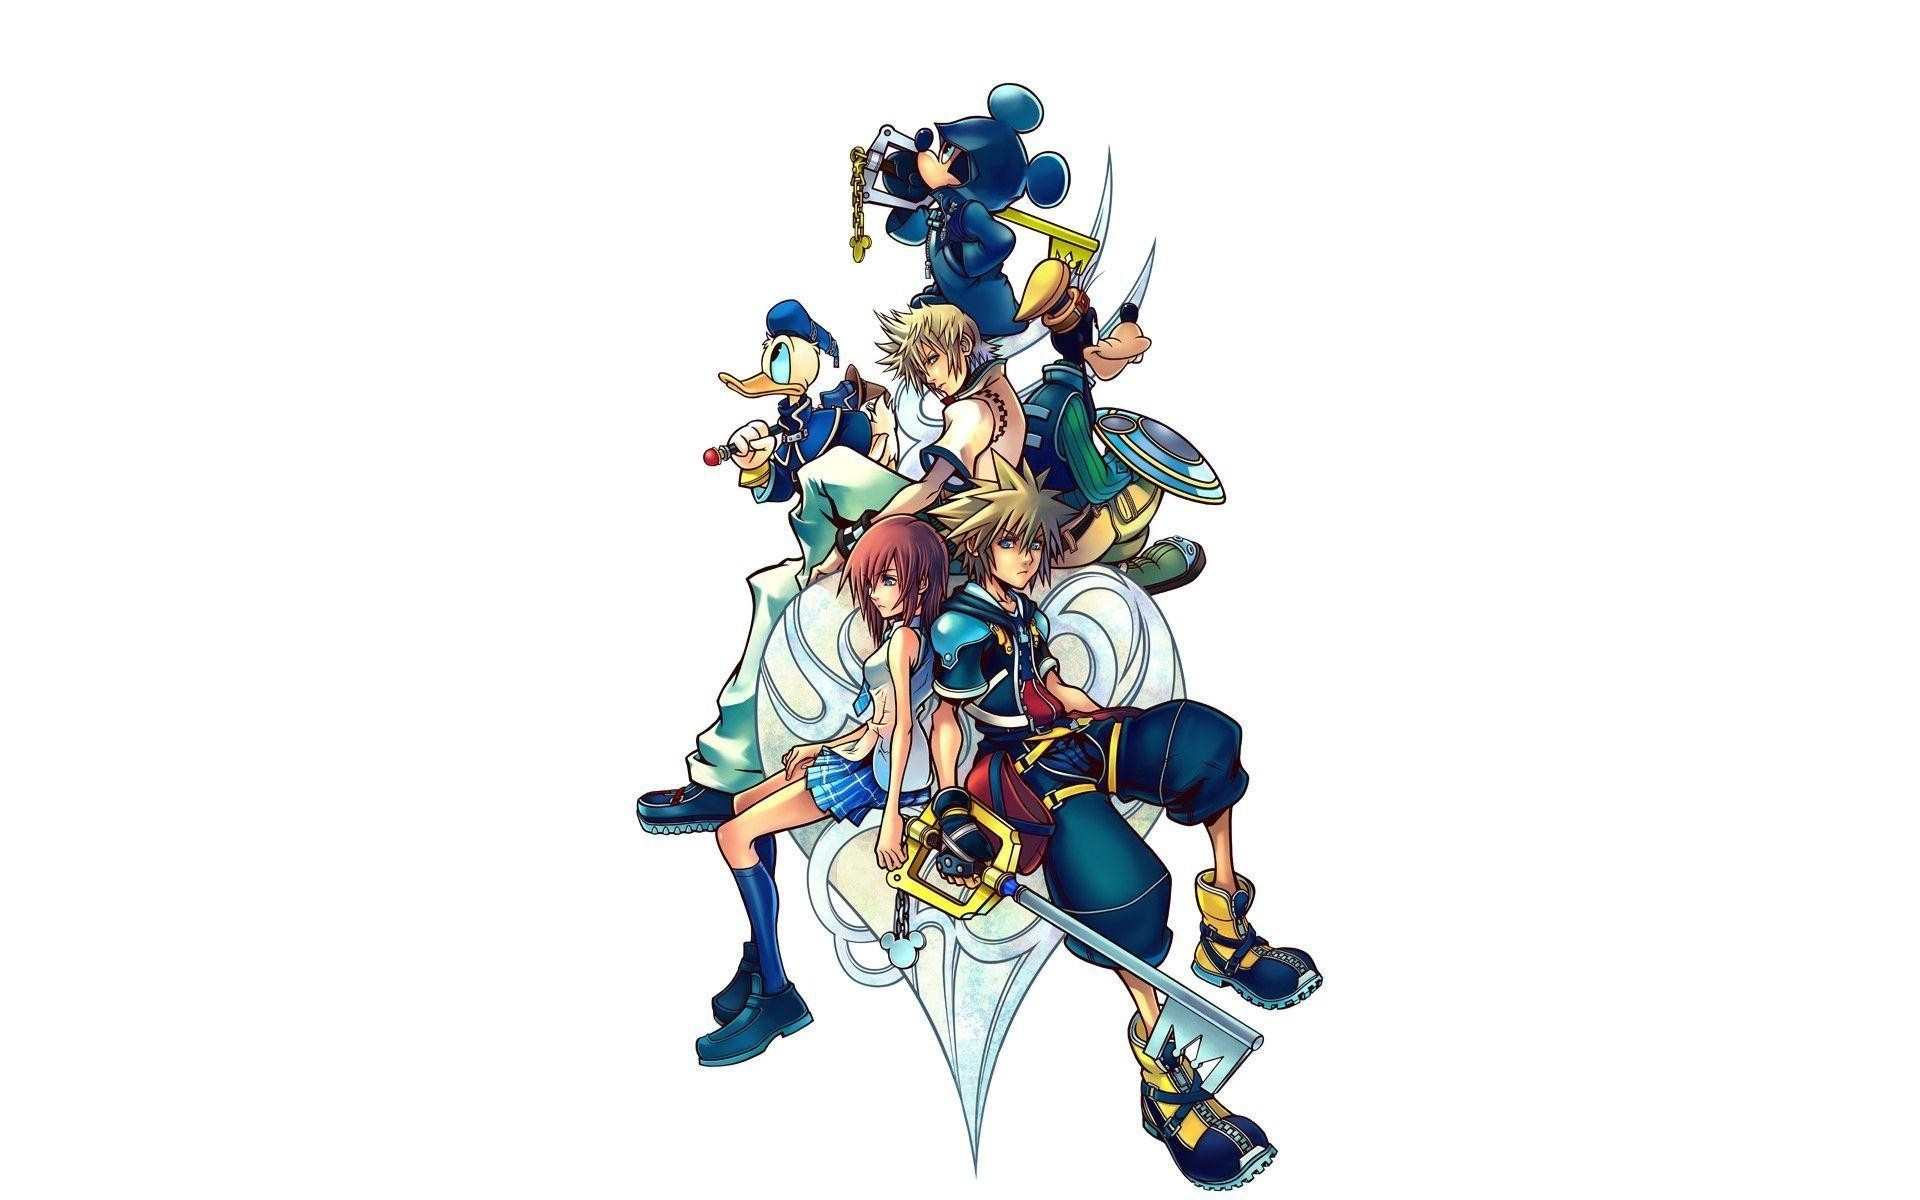 Res: 1920x1200, Title : kingdom hearts wallpapers hd - wallpaper cave. Dimension : 1920 x  1200. File Type : JPG/JPEG